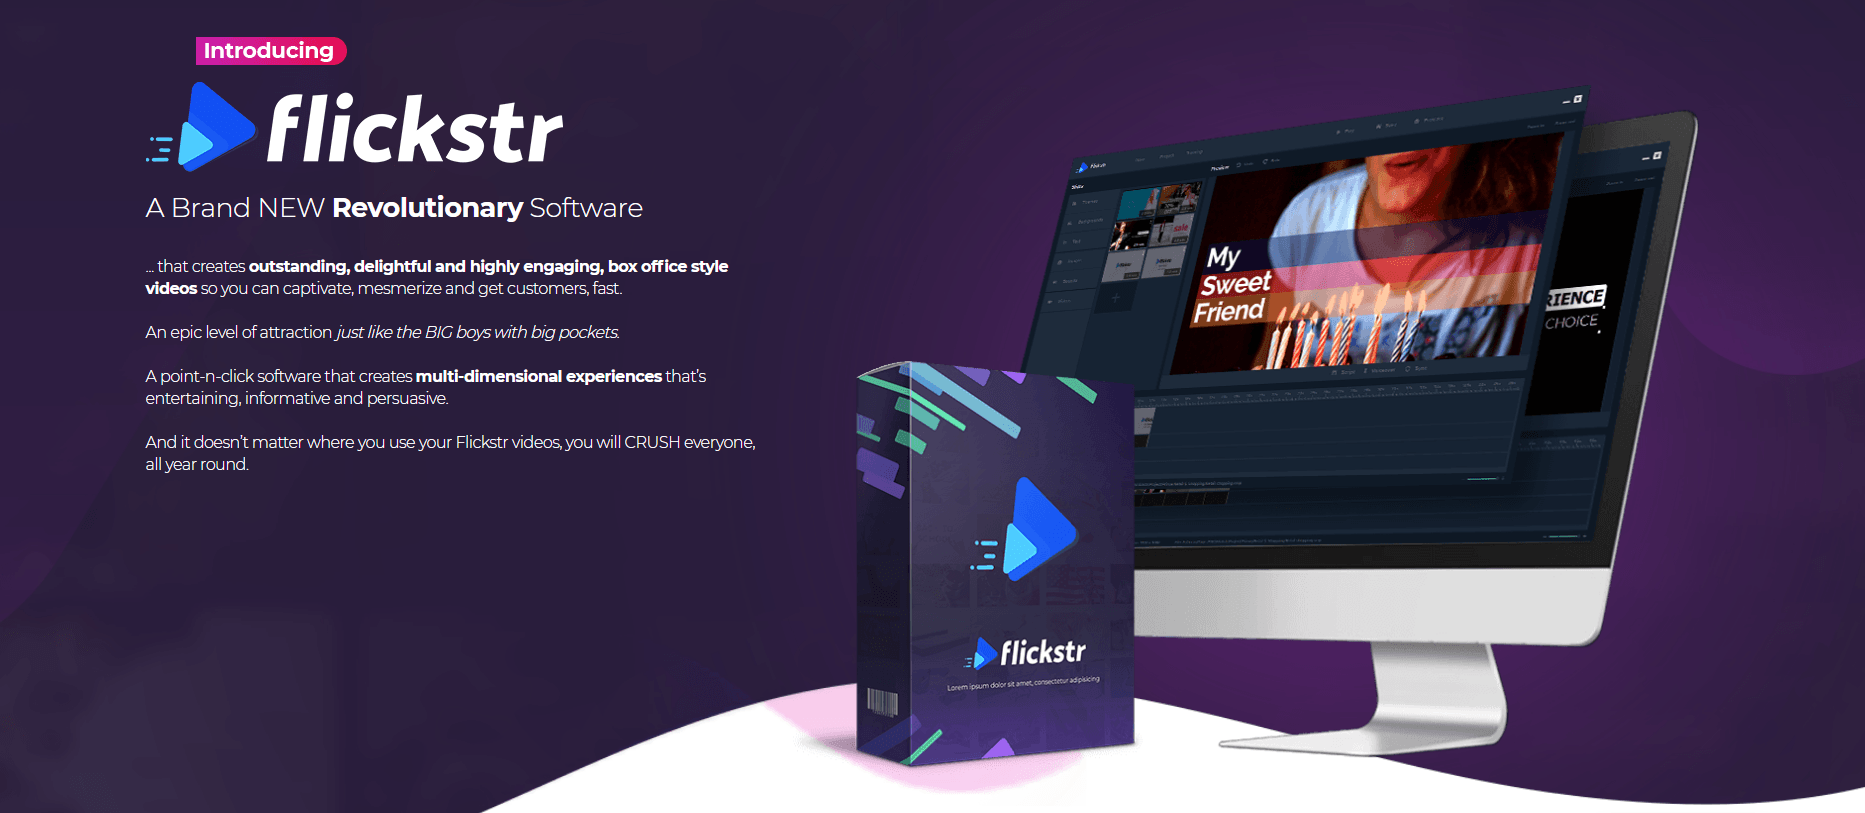 Create Amazing Video Agency Quality Content That Converts With Flickstr 2